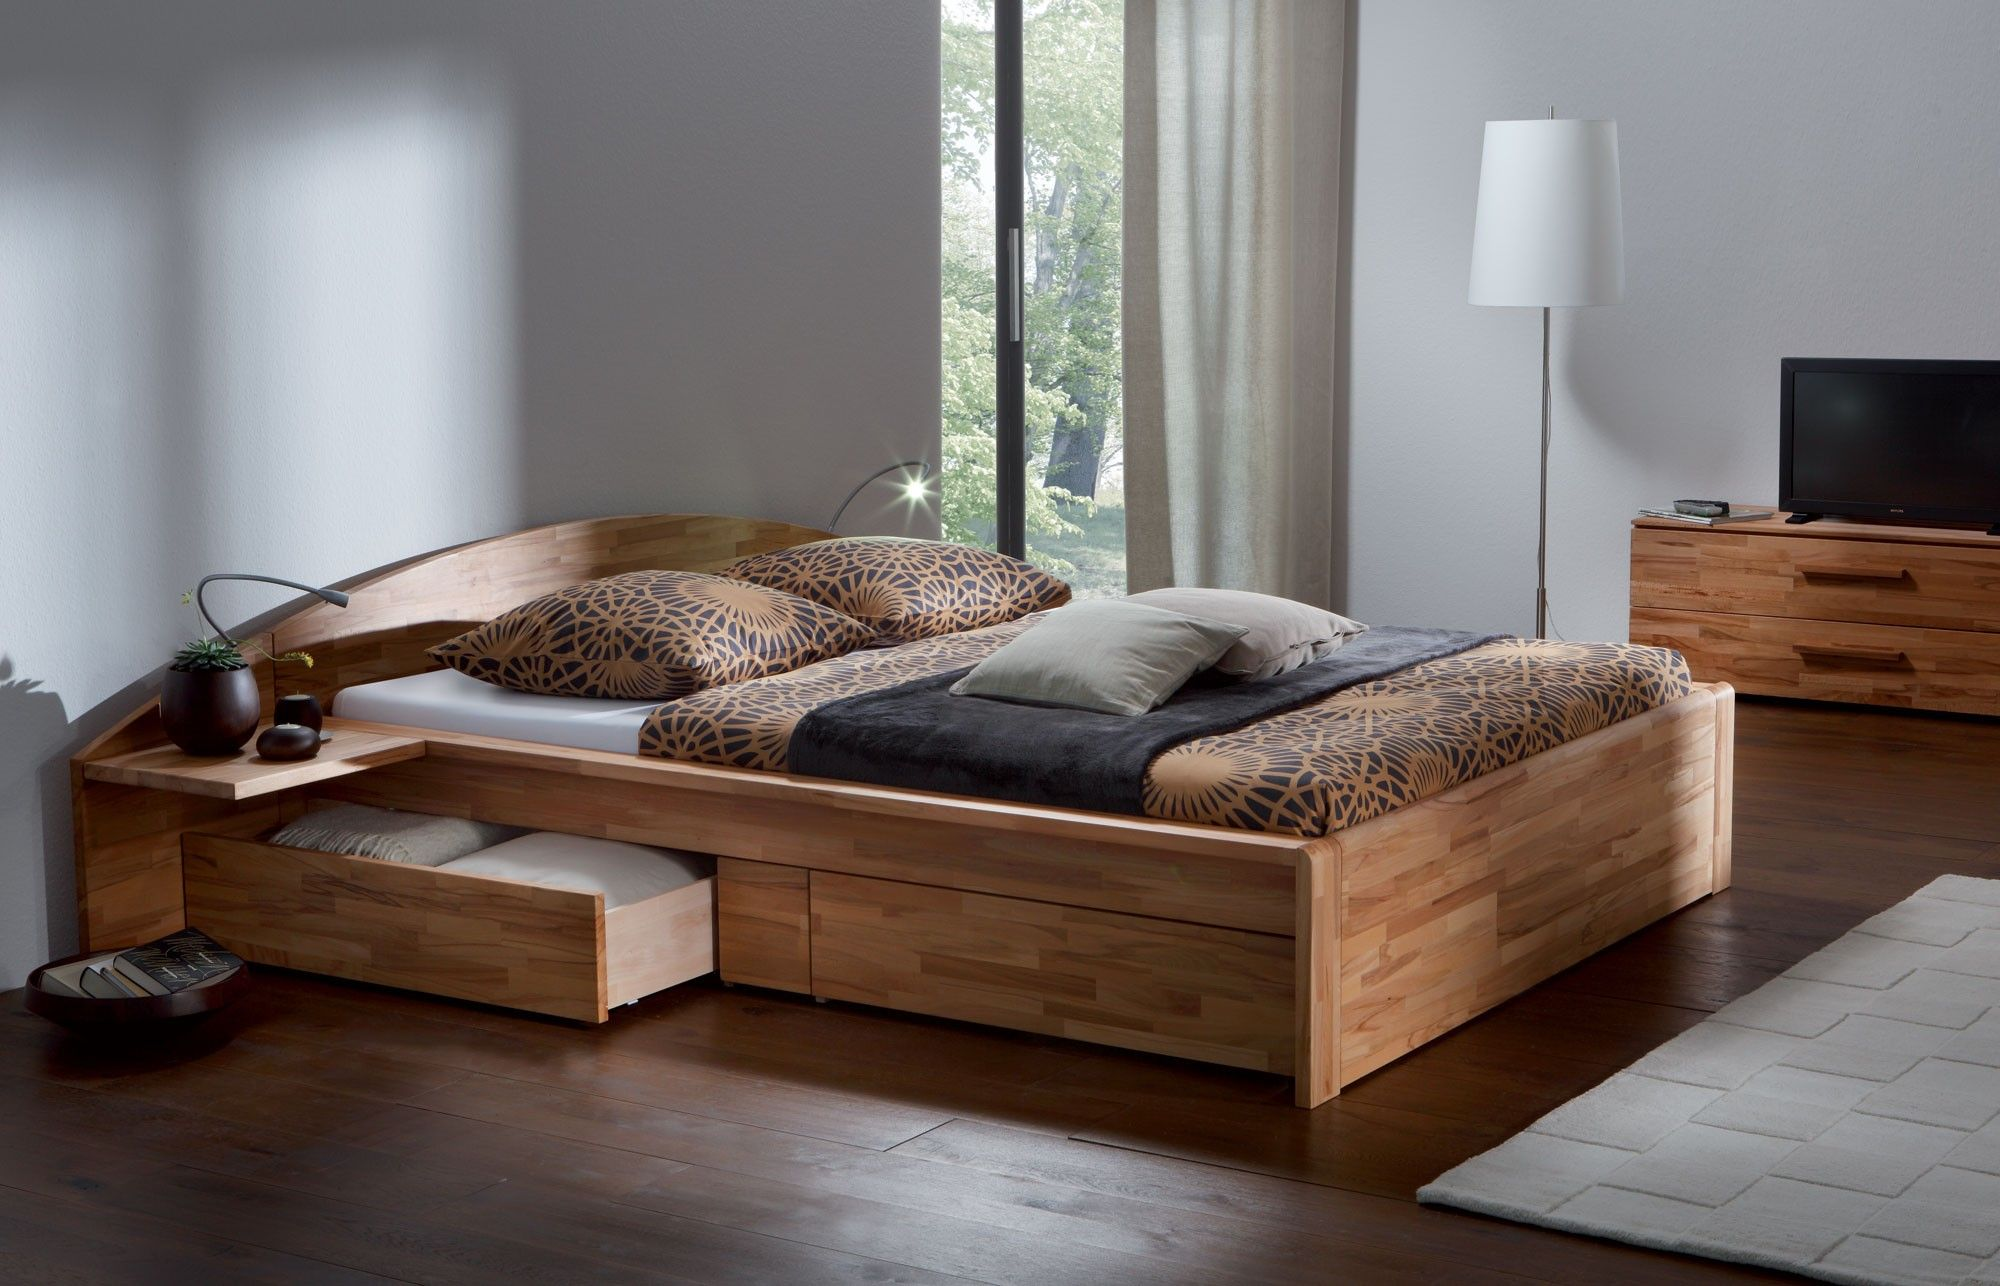 Hasena Woodline Berga Storage / Platform Bed with